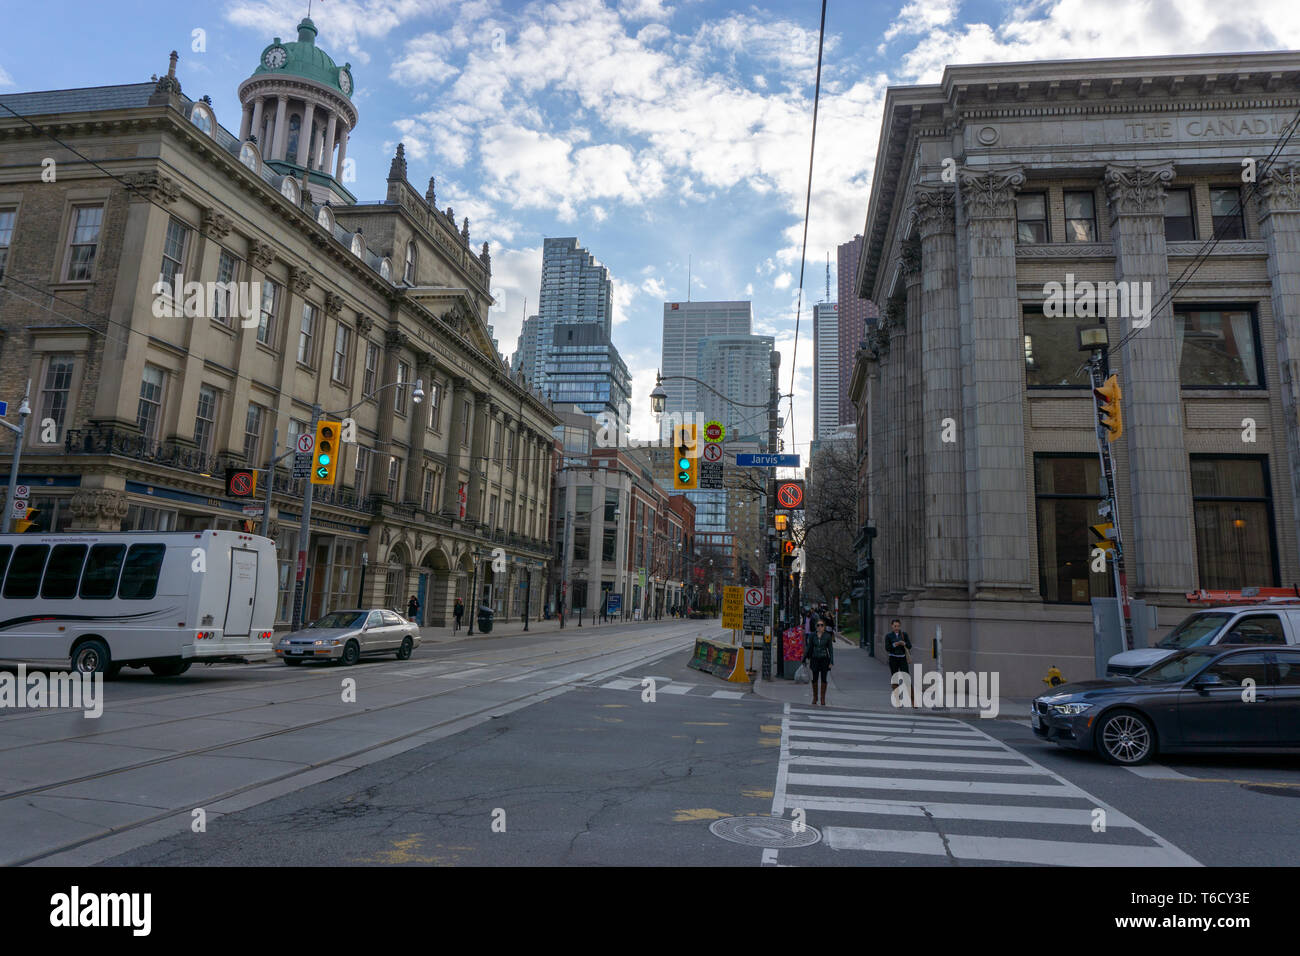 The intersection of King & Jarvis st belongs to the Old Town - the first neighborhood of Toronto. There are plenty of must-see historical buildings! - Stock Image